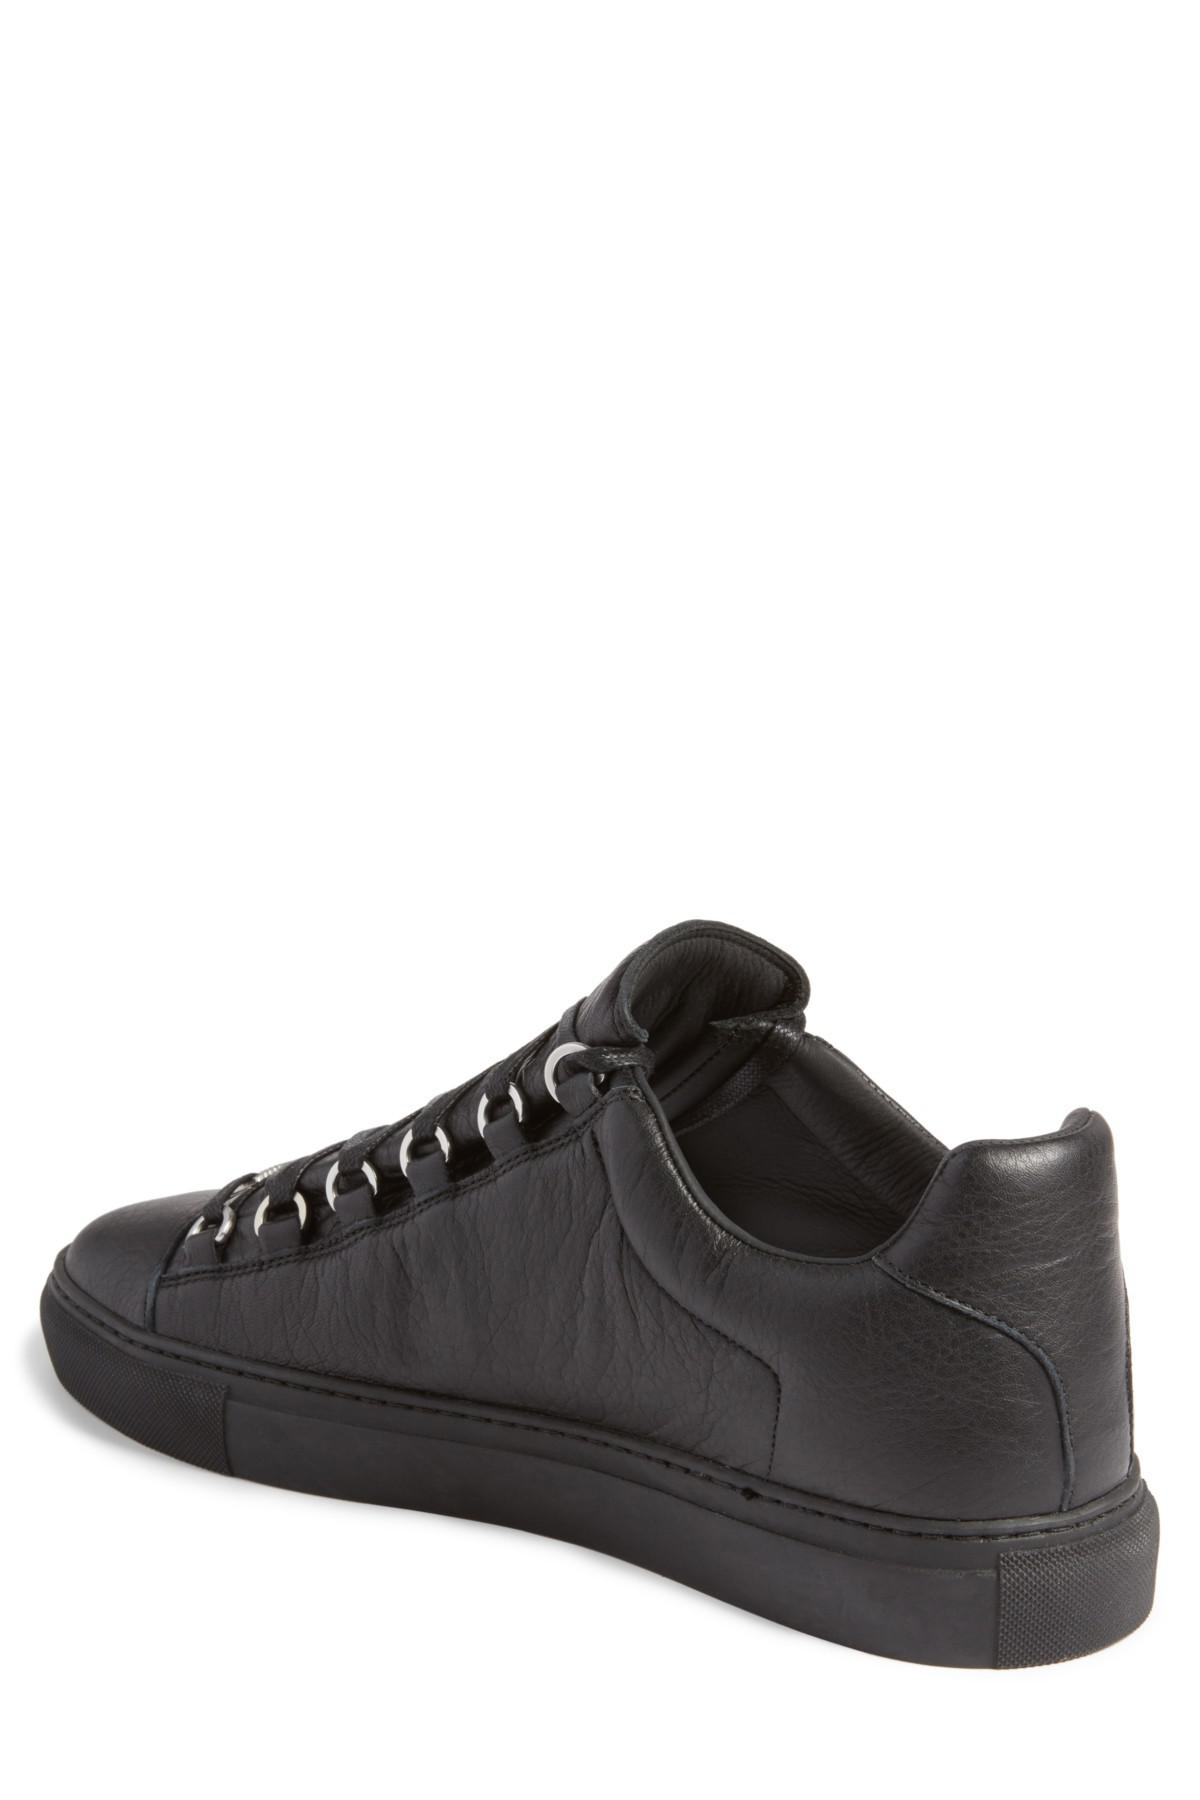 8984b36203dbd Lyst - Balenciaga Arena Low Sneaker (men) in Black for Men